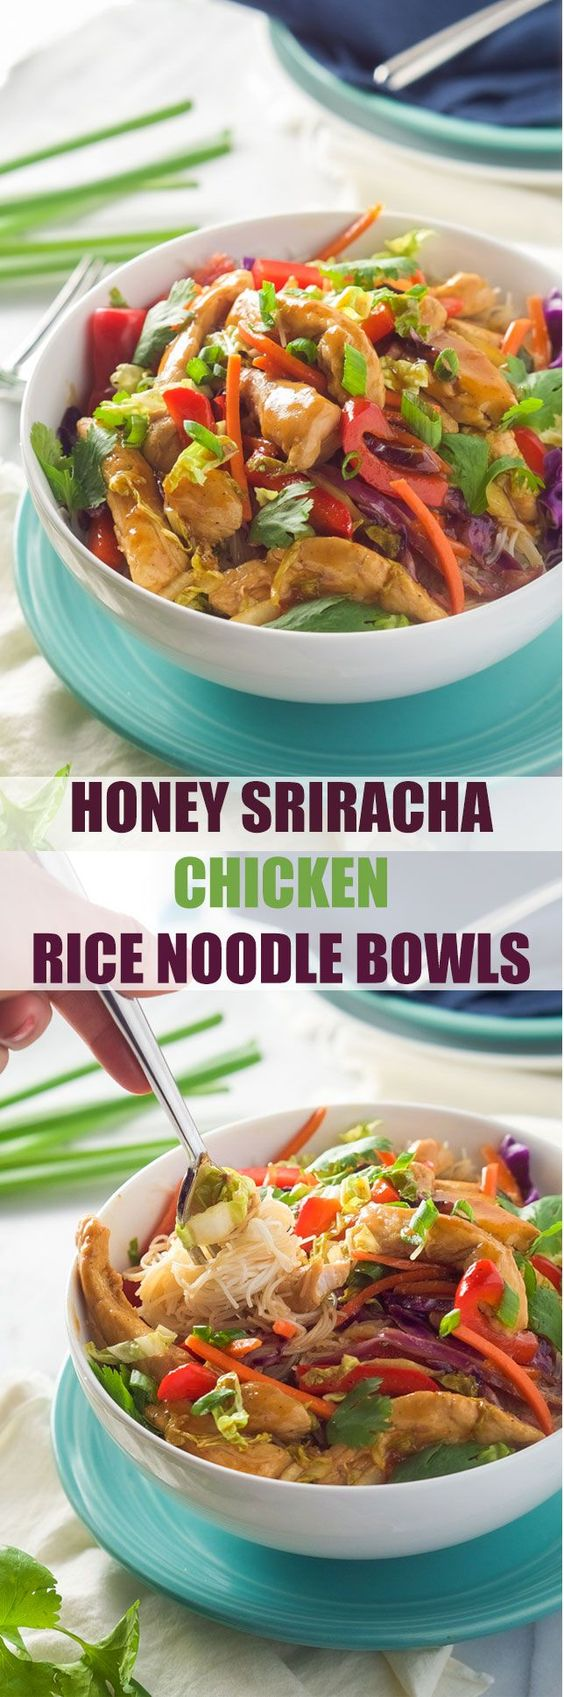 Honey Sriracha Chicken Rice Noodle Bowls are filled with chicken and ...